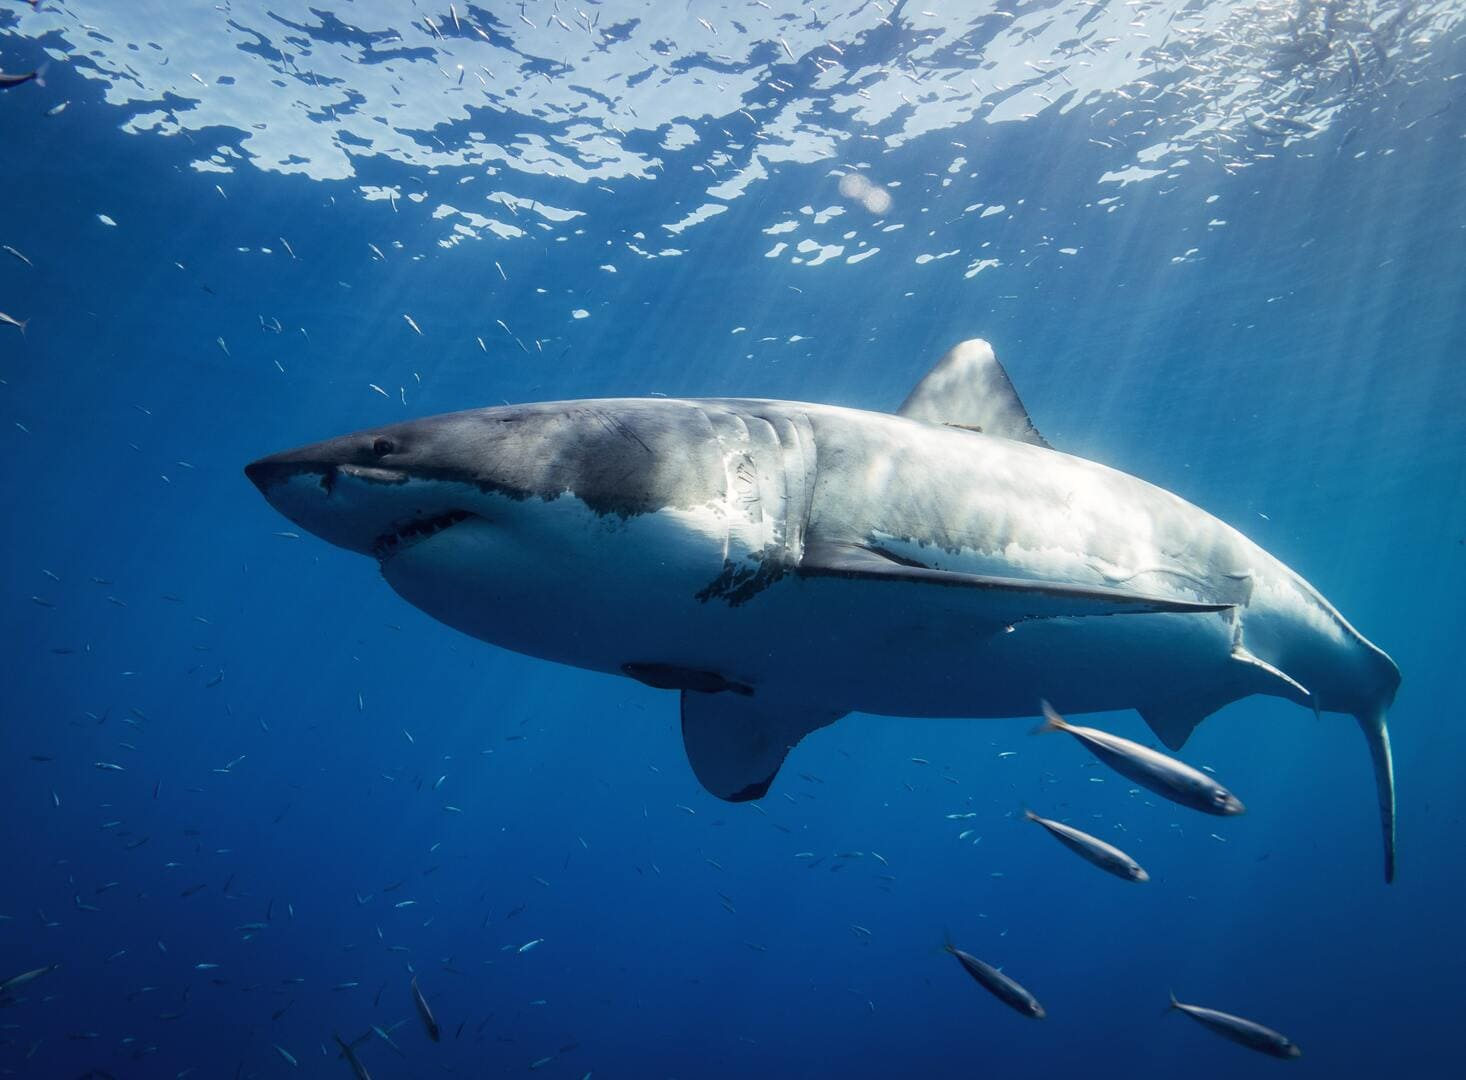 A view of the Great White Shark from below